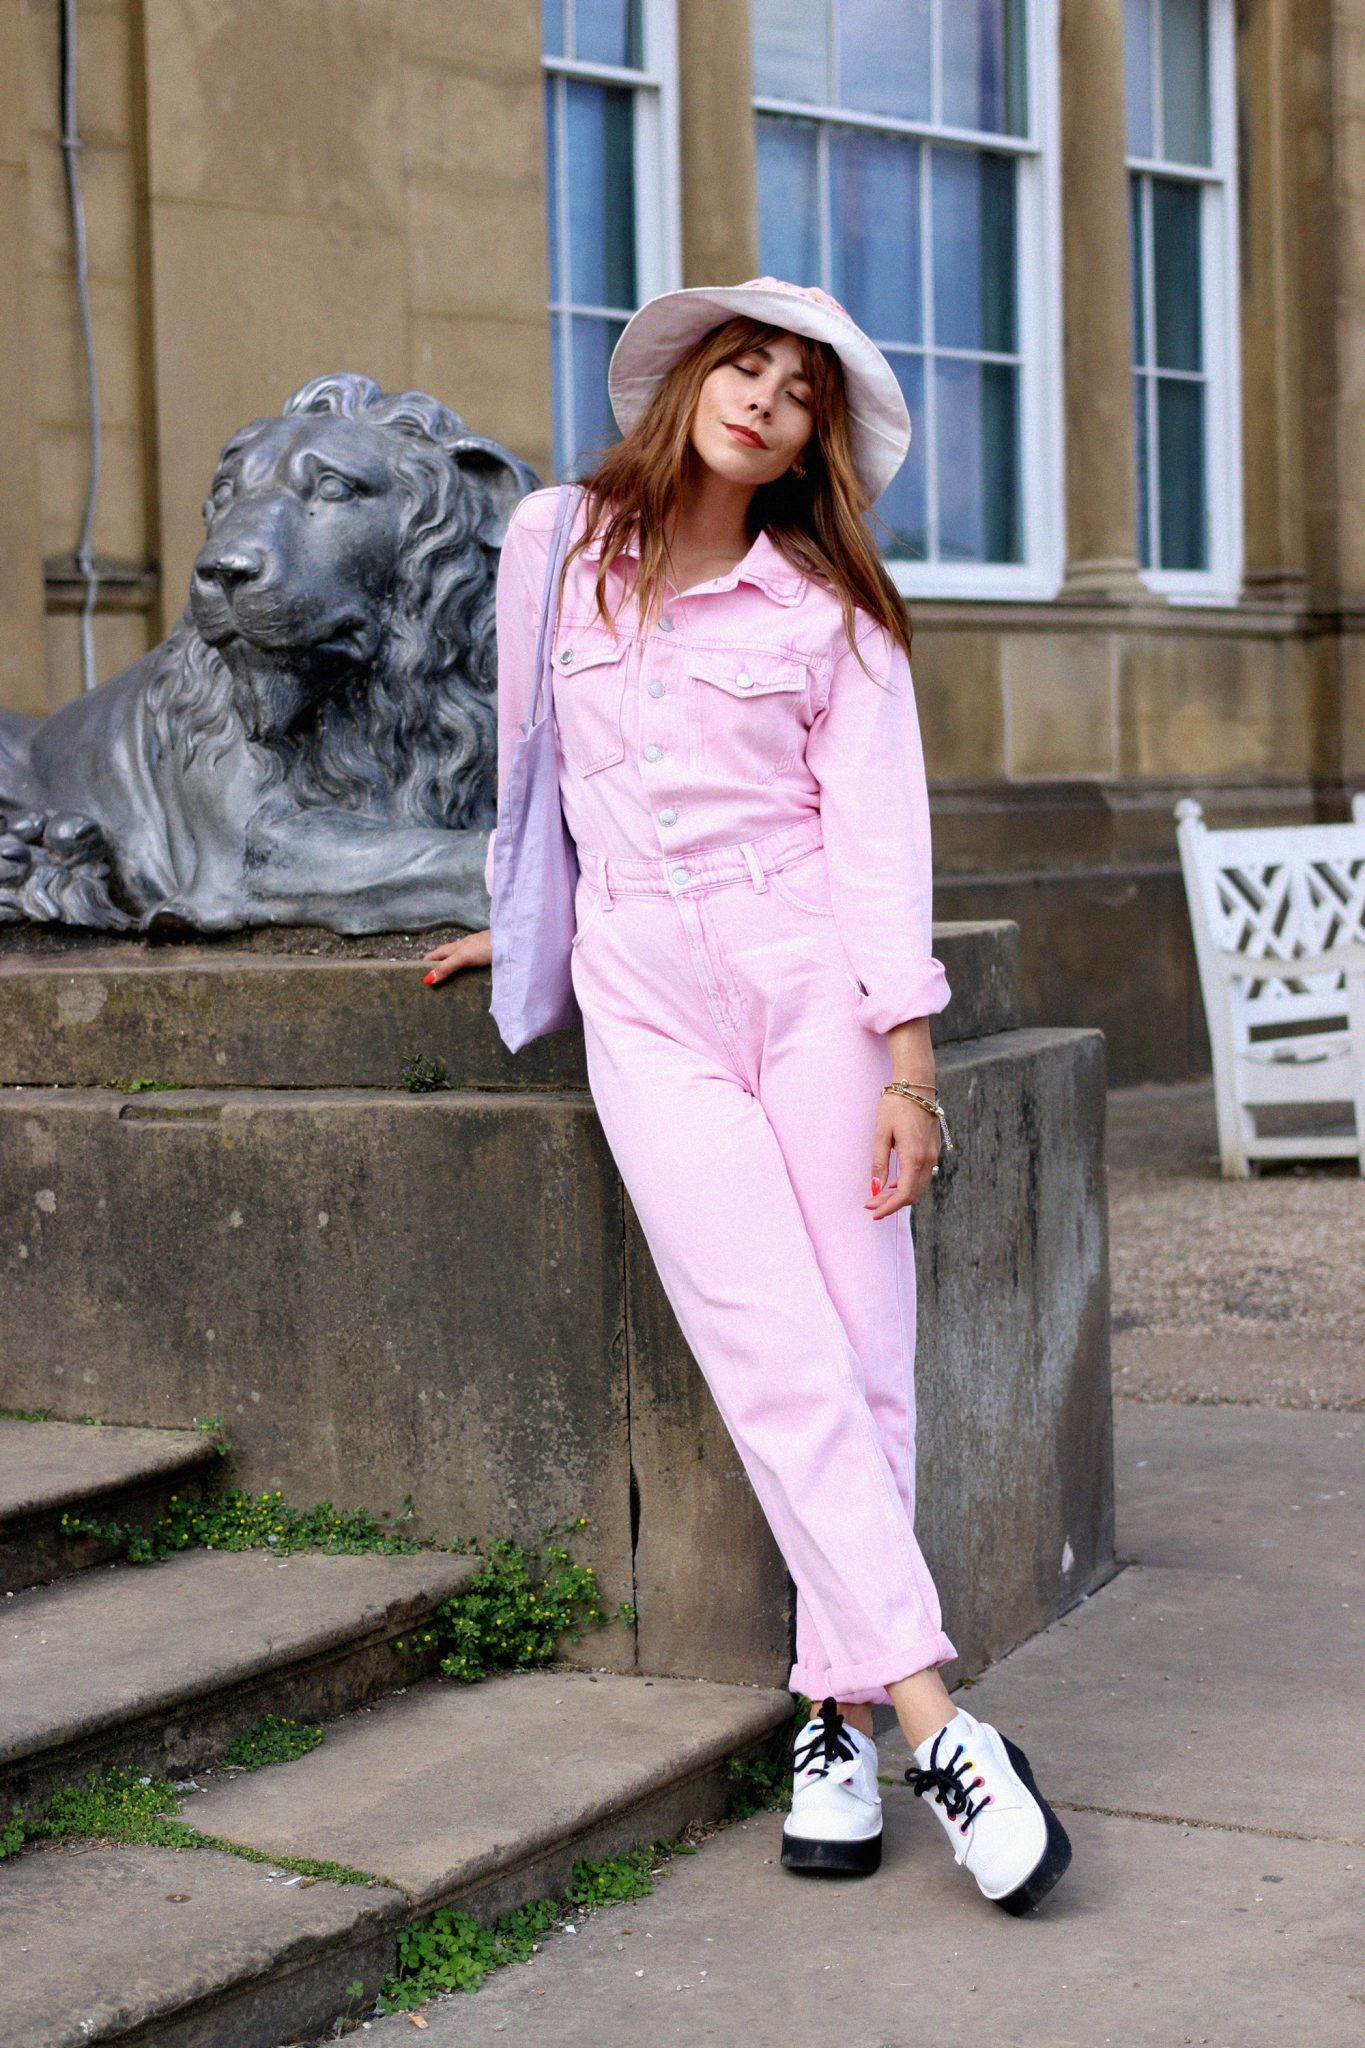 HOW TO STYLE A BOILERSUIT